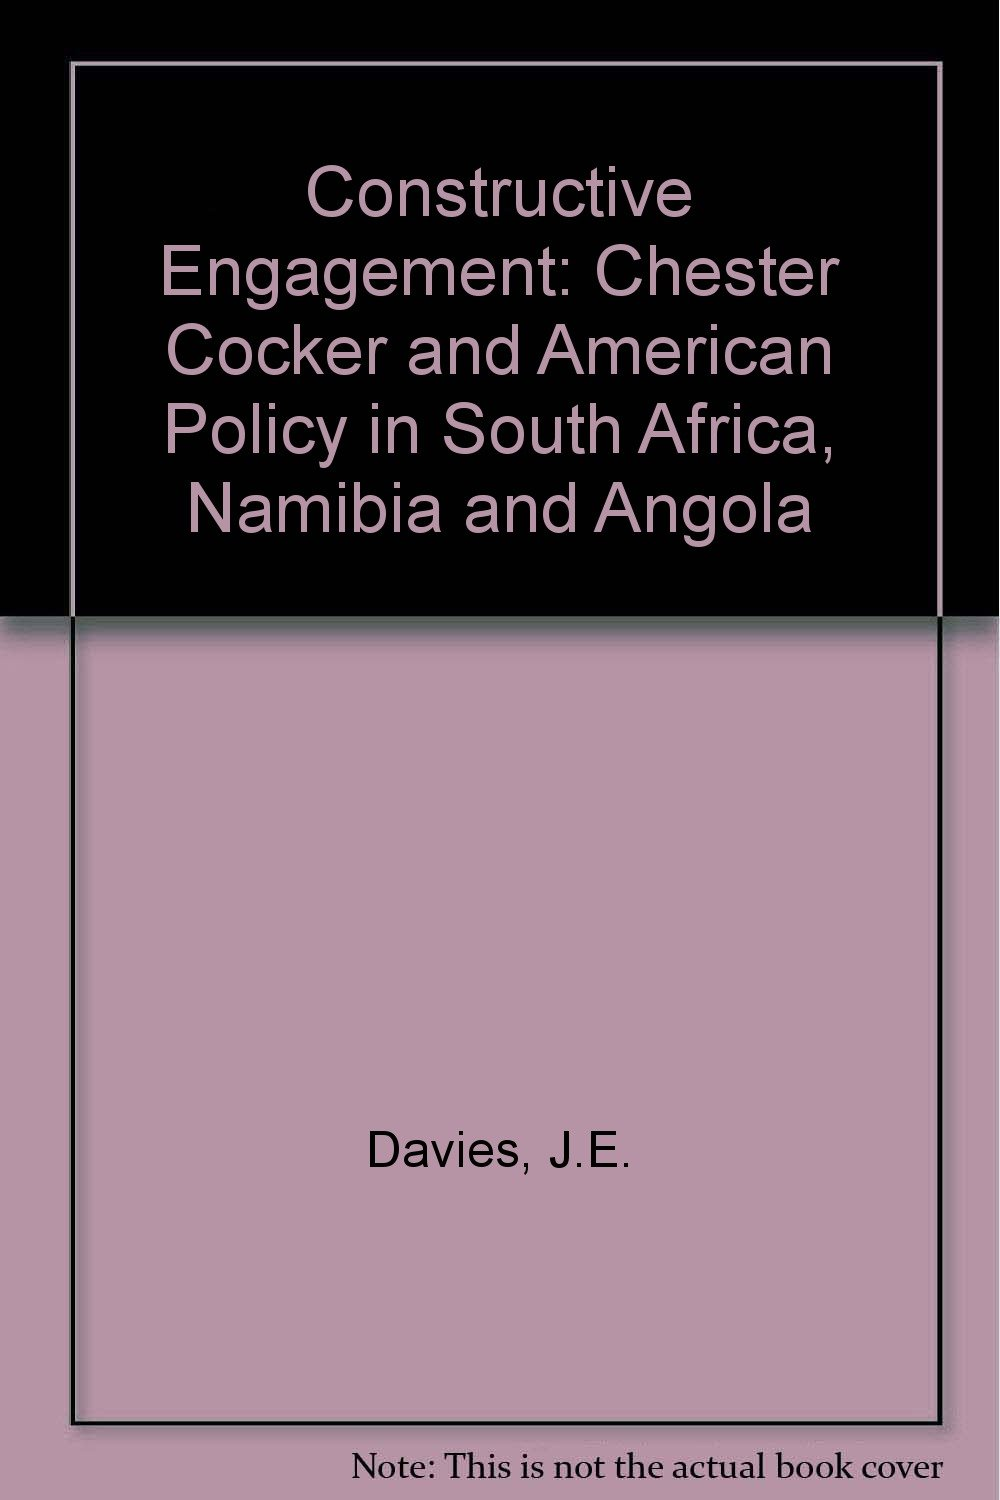 Constructive Engagement: Chester Cocker and American Policy in South Africa, Namibia and Angola pdf